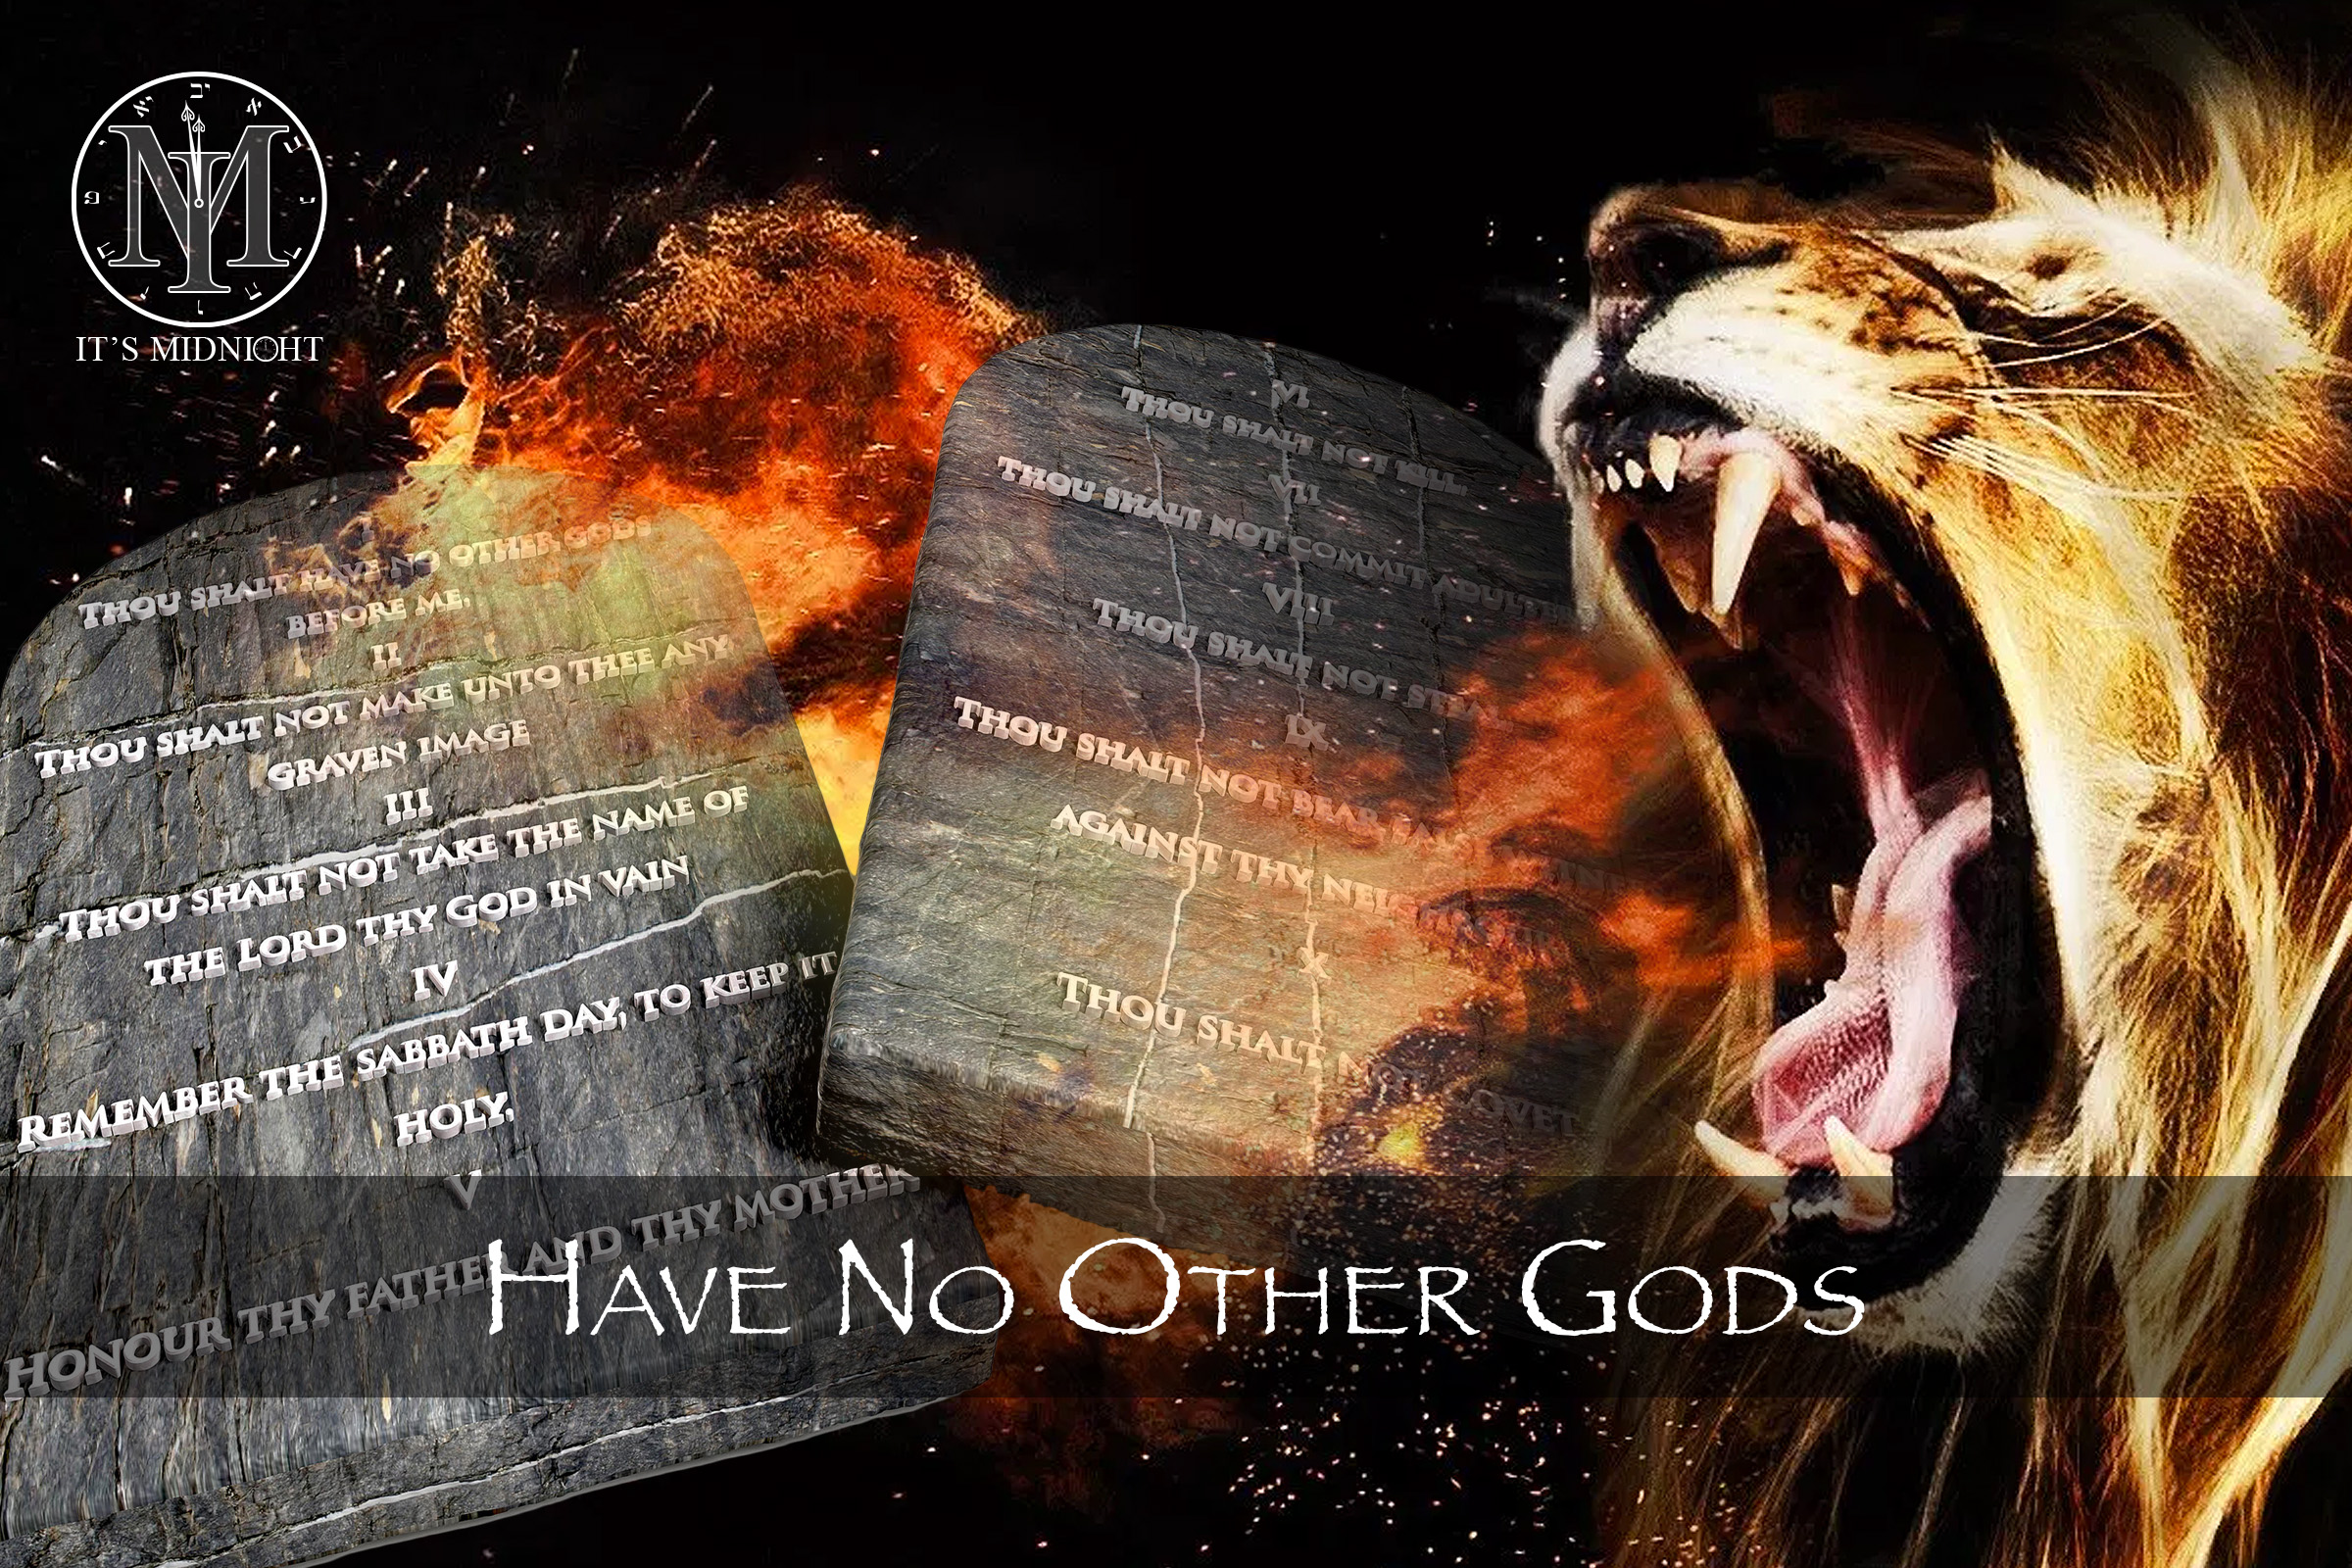 1st Commandment: Have No Other Gods